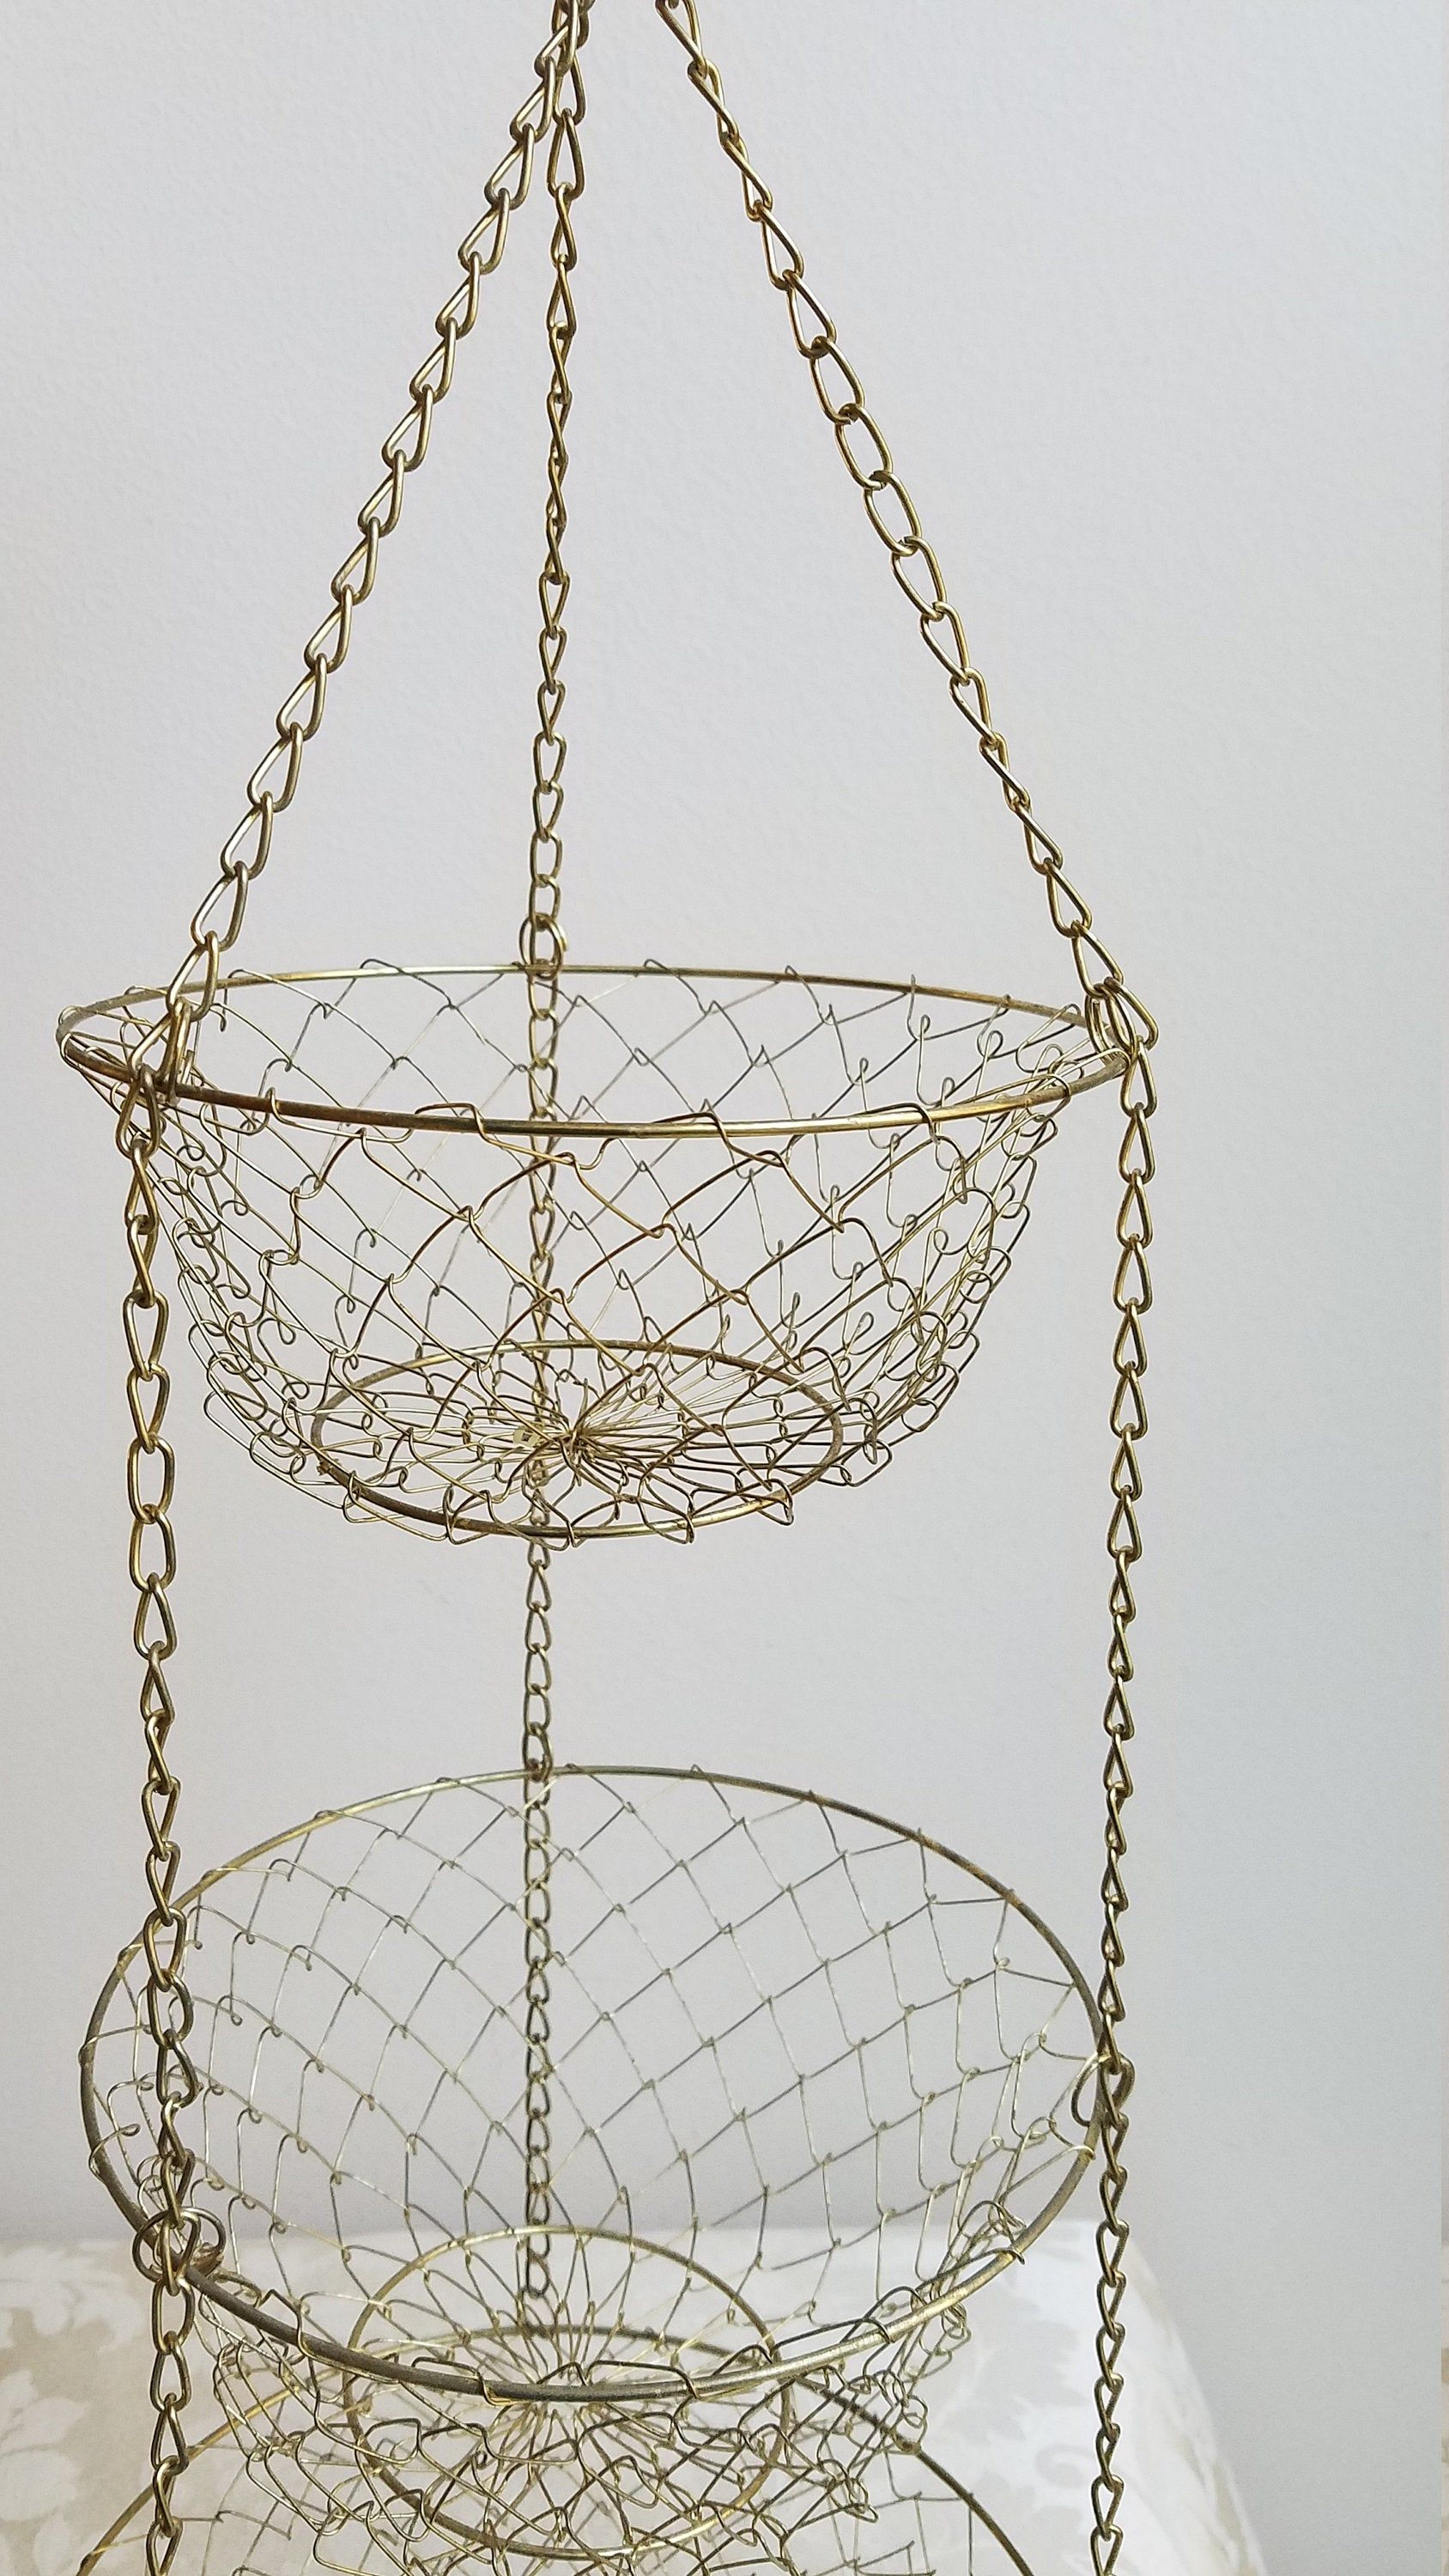 Vintage Gold Metal Three Tier Hanging Baskets Wire Mesh With Chain Collapsible French Style For Frui Hanging Metal Baskets Fruit And Vegetable Storage Hanging